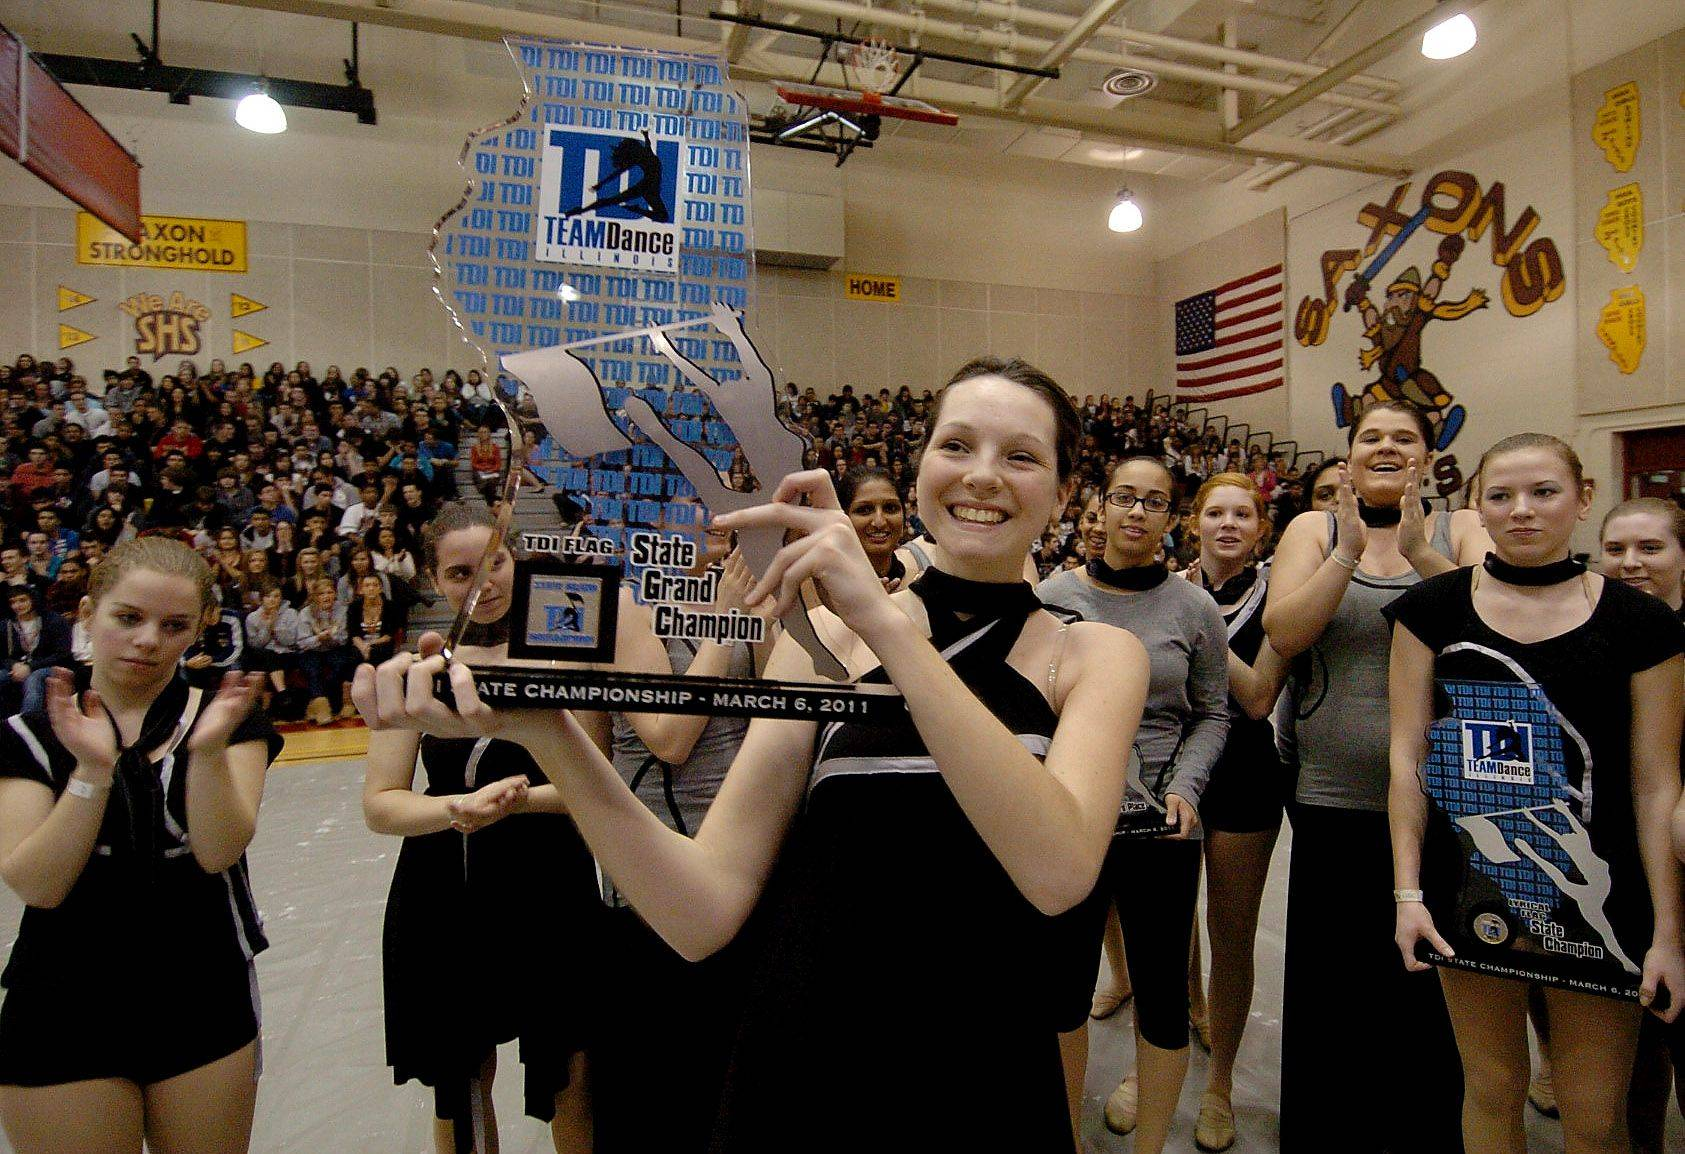 Jill Tegtmeyer hoists the state Grand Champion trophy won by the Schaumburg High School Lyrical Flag team.